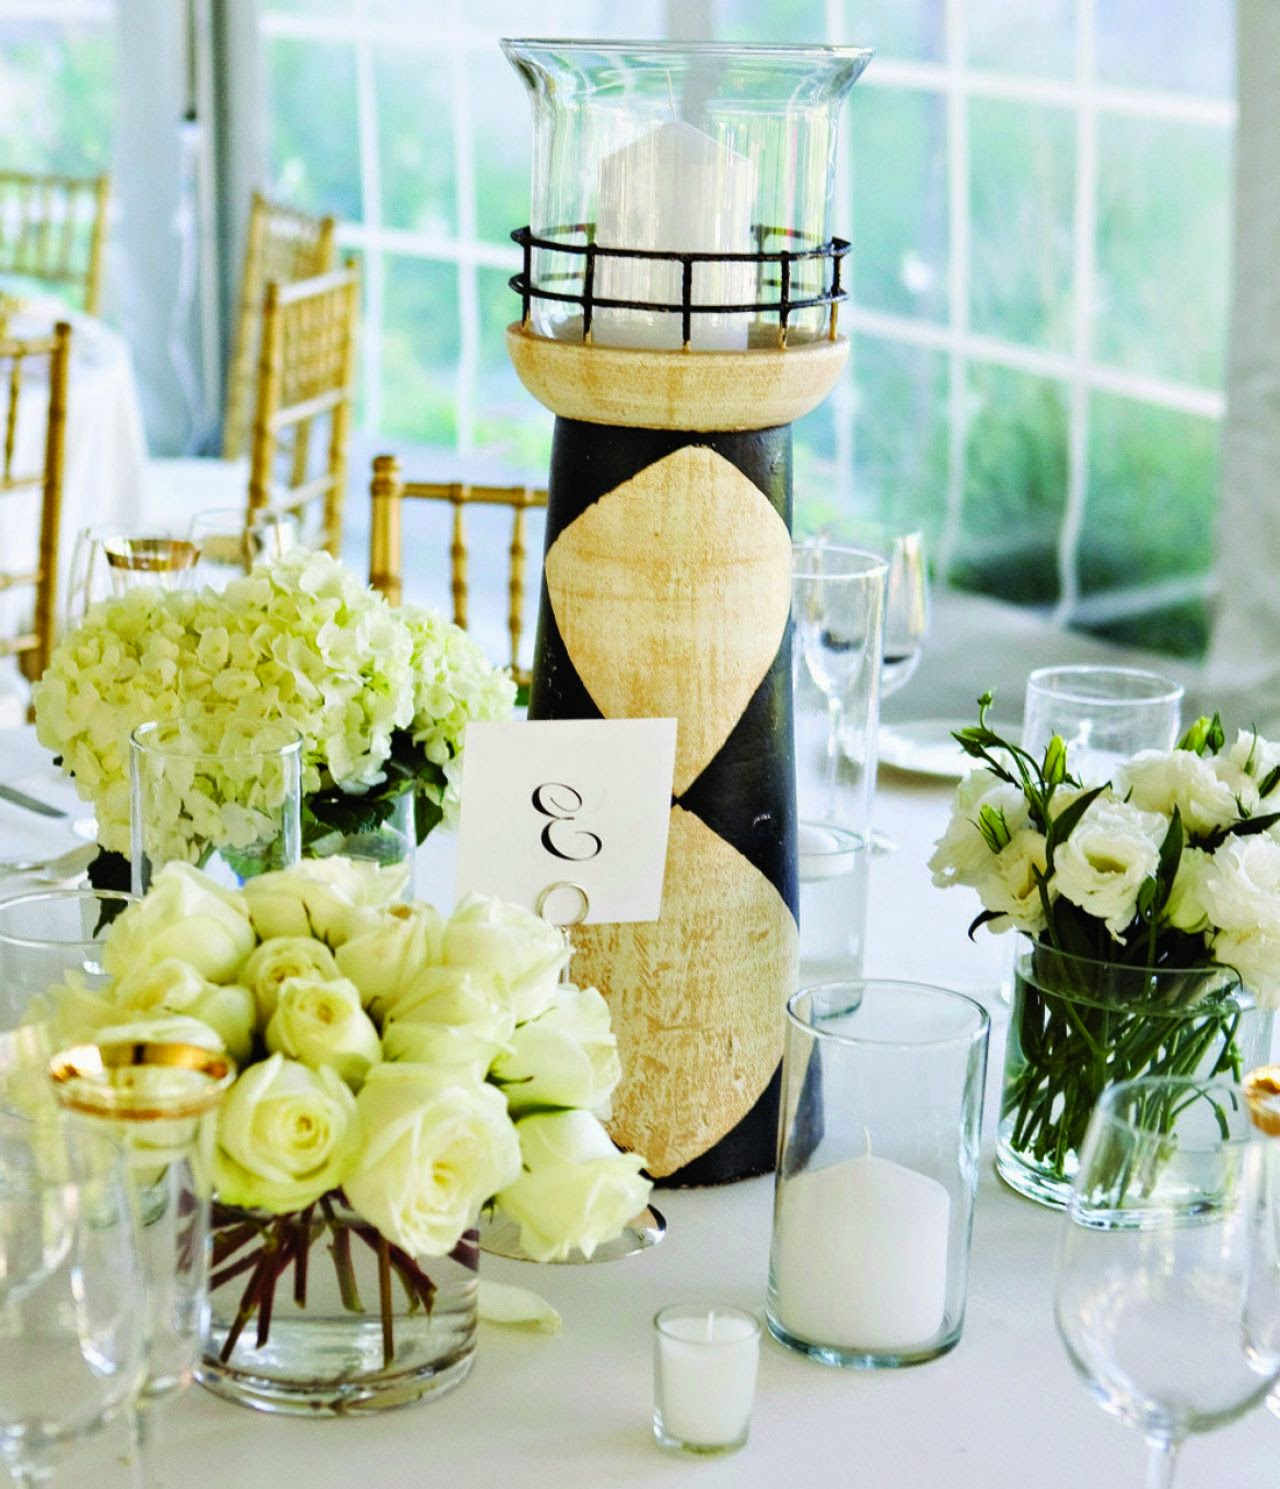 Beach Wedding Centerpieces Ideas: Wedding Stuff Ideas: Top 7 Beach Wedding Centerpiece Ideas